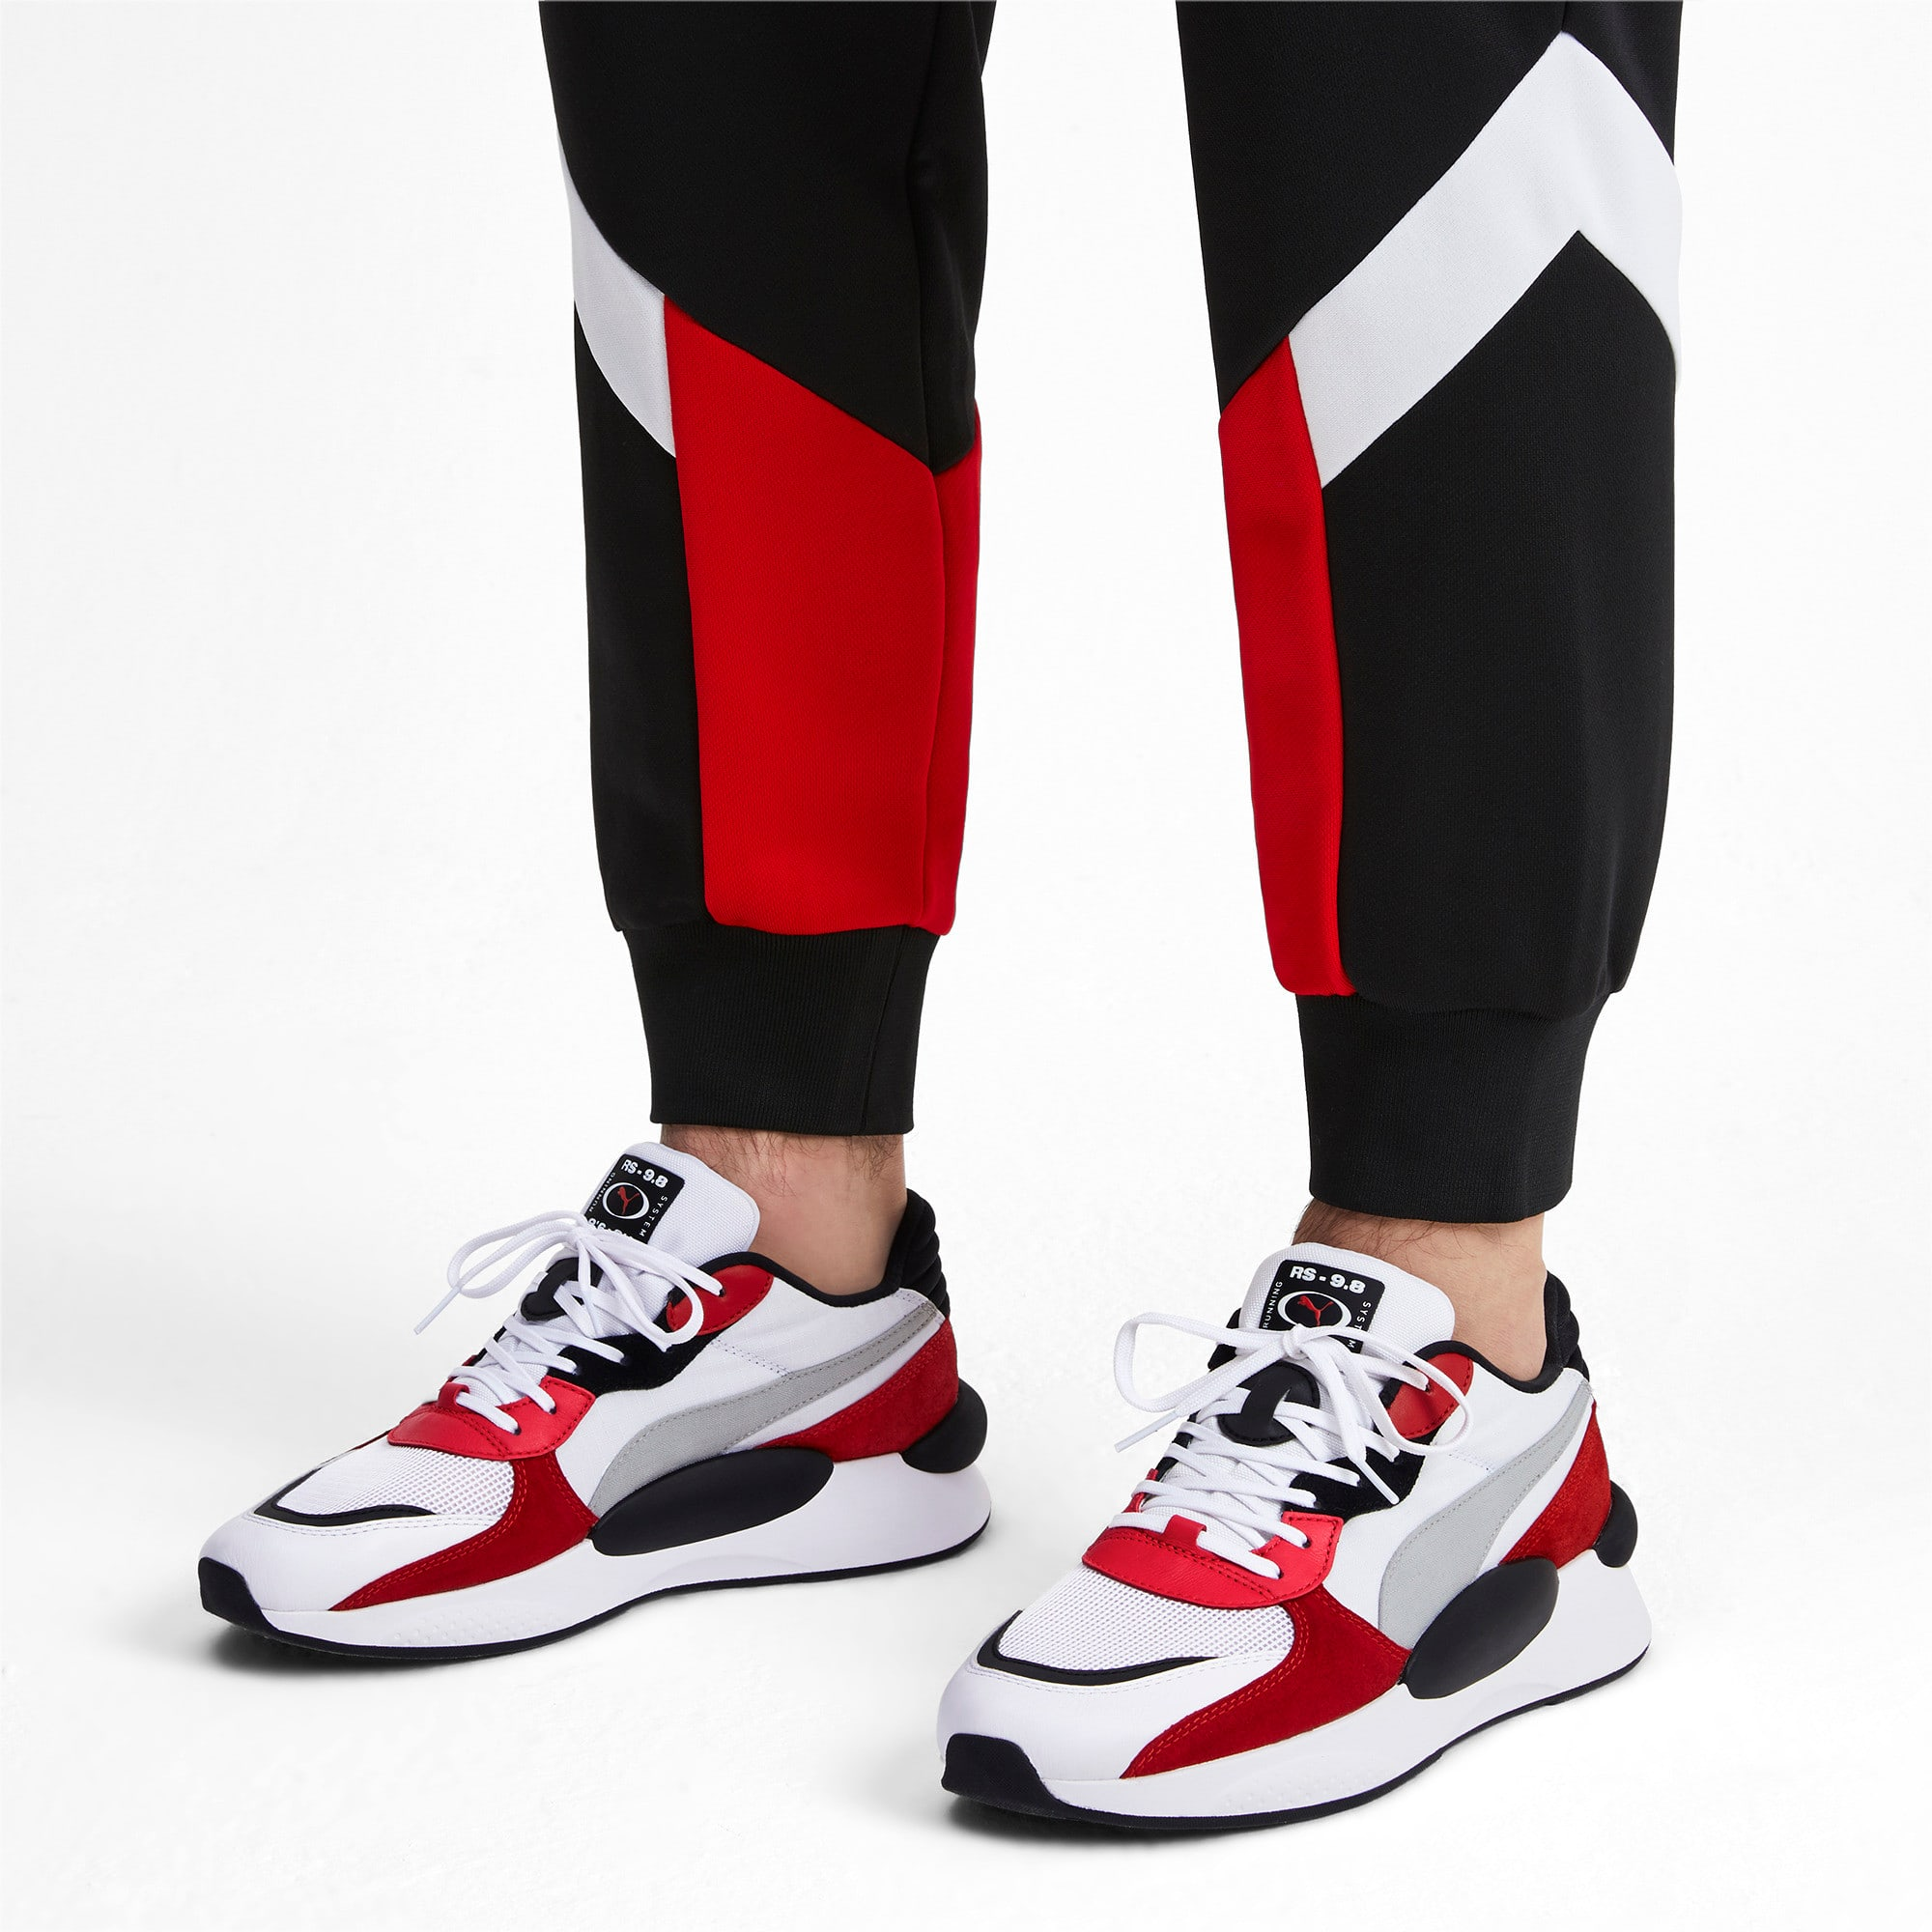 Thumbnail 2 of RS 9.8 Space sportschoenen, Puma White-High Risk Red, medium